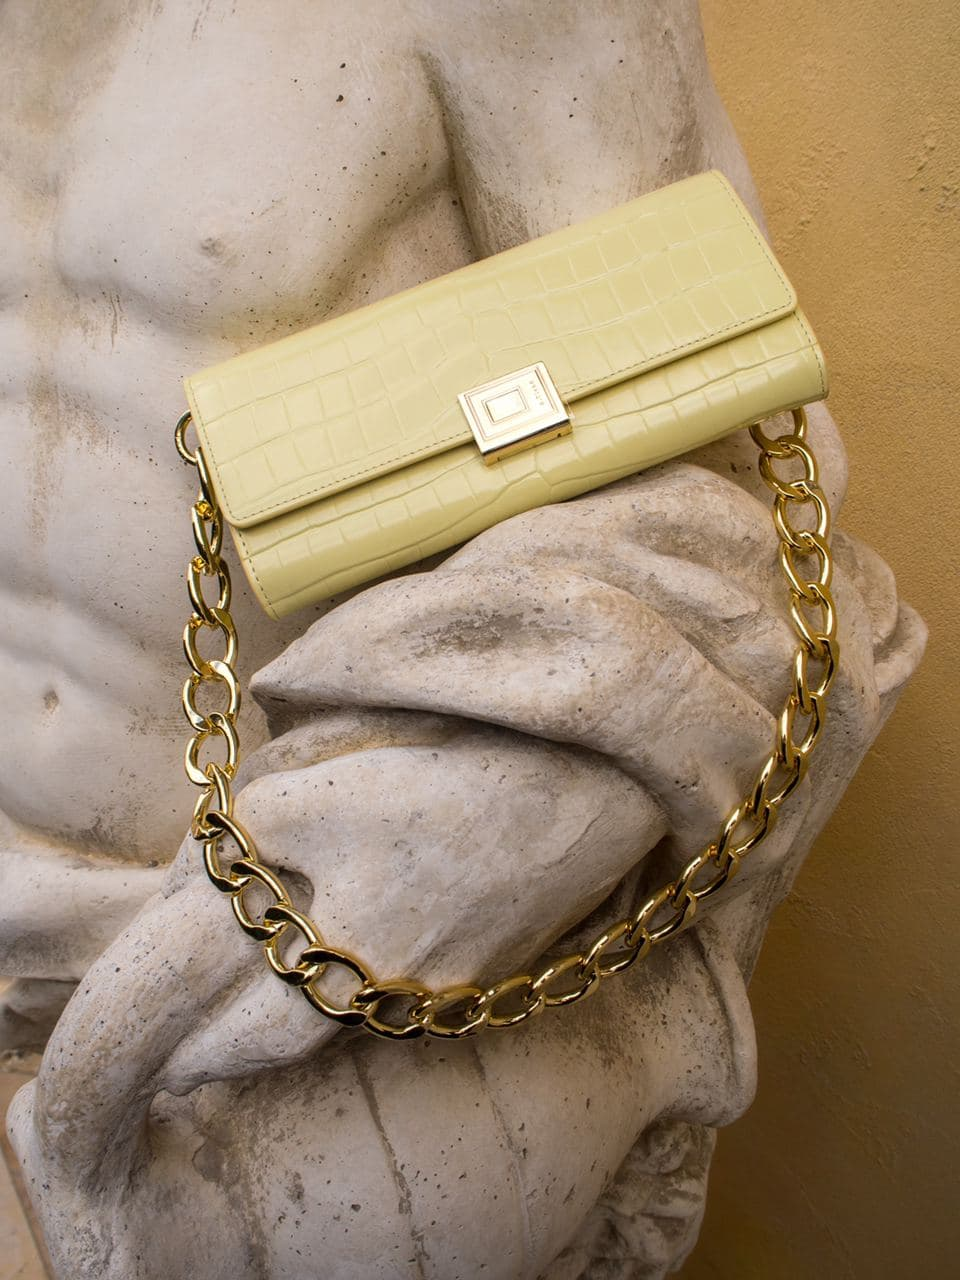 bag, yellow bag, a.cloud milano, roman statue, photoshoot, editorial, vanilla custard color, yellow clutch bag